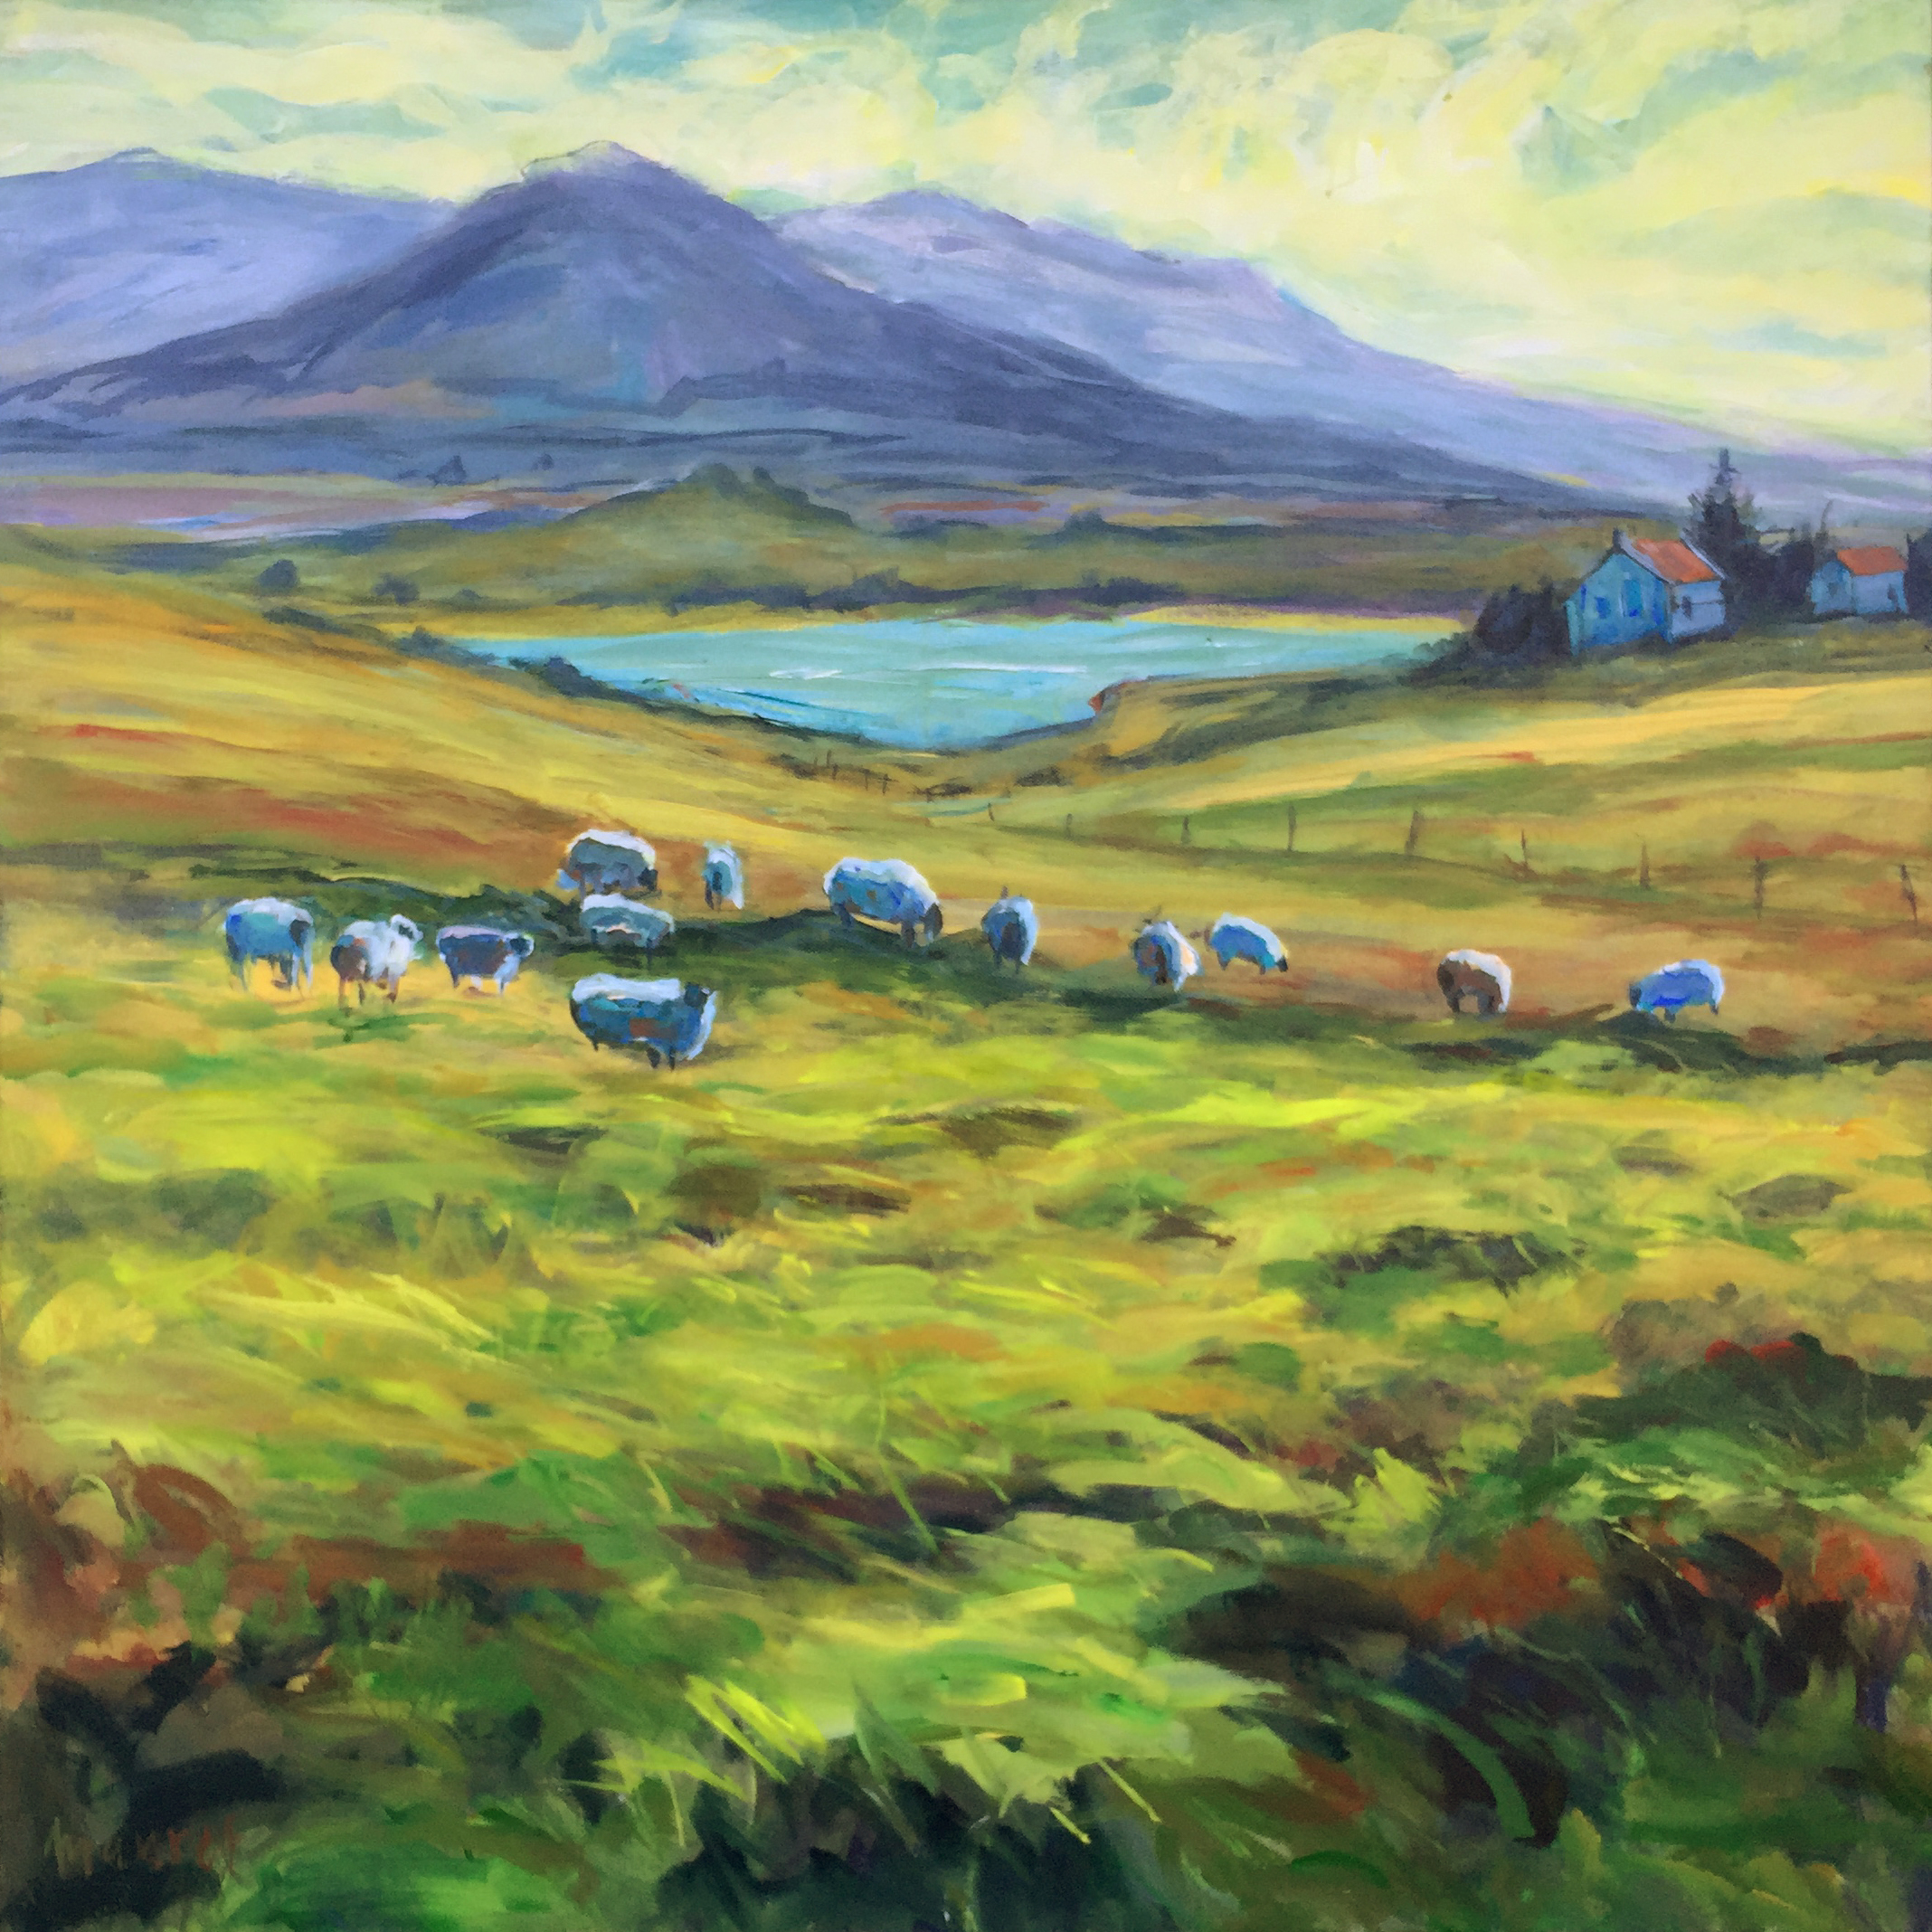 John Maurer; Grazing Derryinver Ireland, 2019, Original Painting Acrylic, 32 x 32 inches. Artwork description: 241 Ireland is my current favorite subject for painting. It was my most recent travel destination. This piece is one of the zillion stunning views I experienced on my two week excursion. Painted on canvas using palette knives and brushes. Includes a brushed silver floater frame. ...